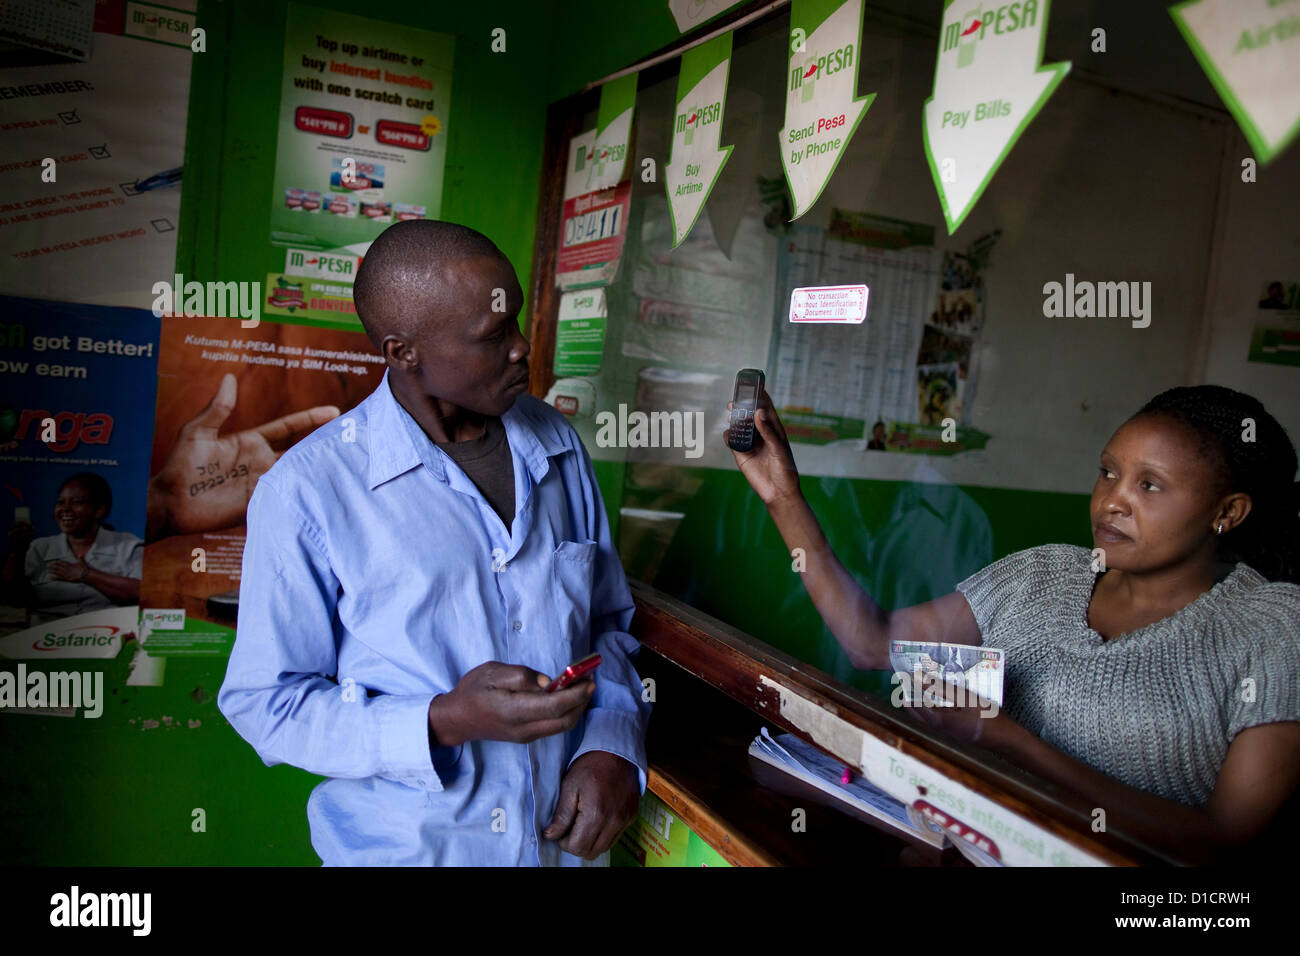 M-Pesa mobile-phone money transfer service in Kenya Stock Photo